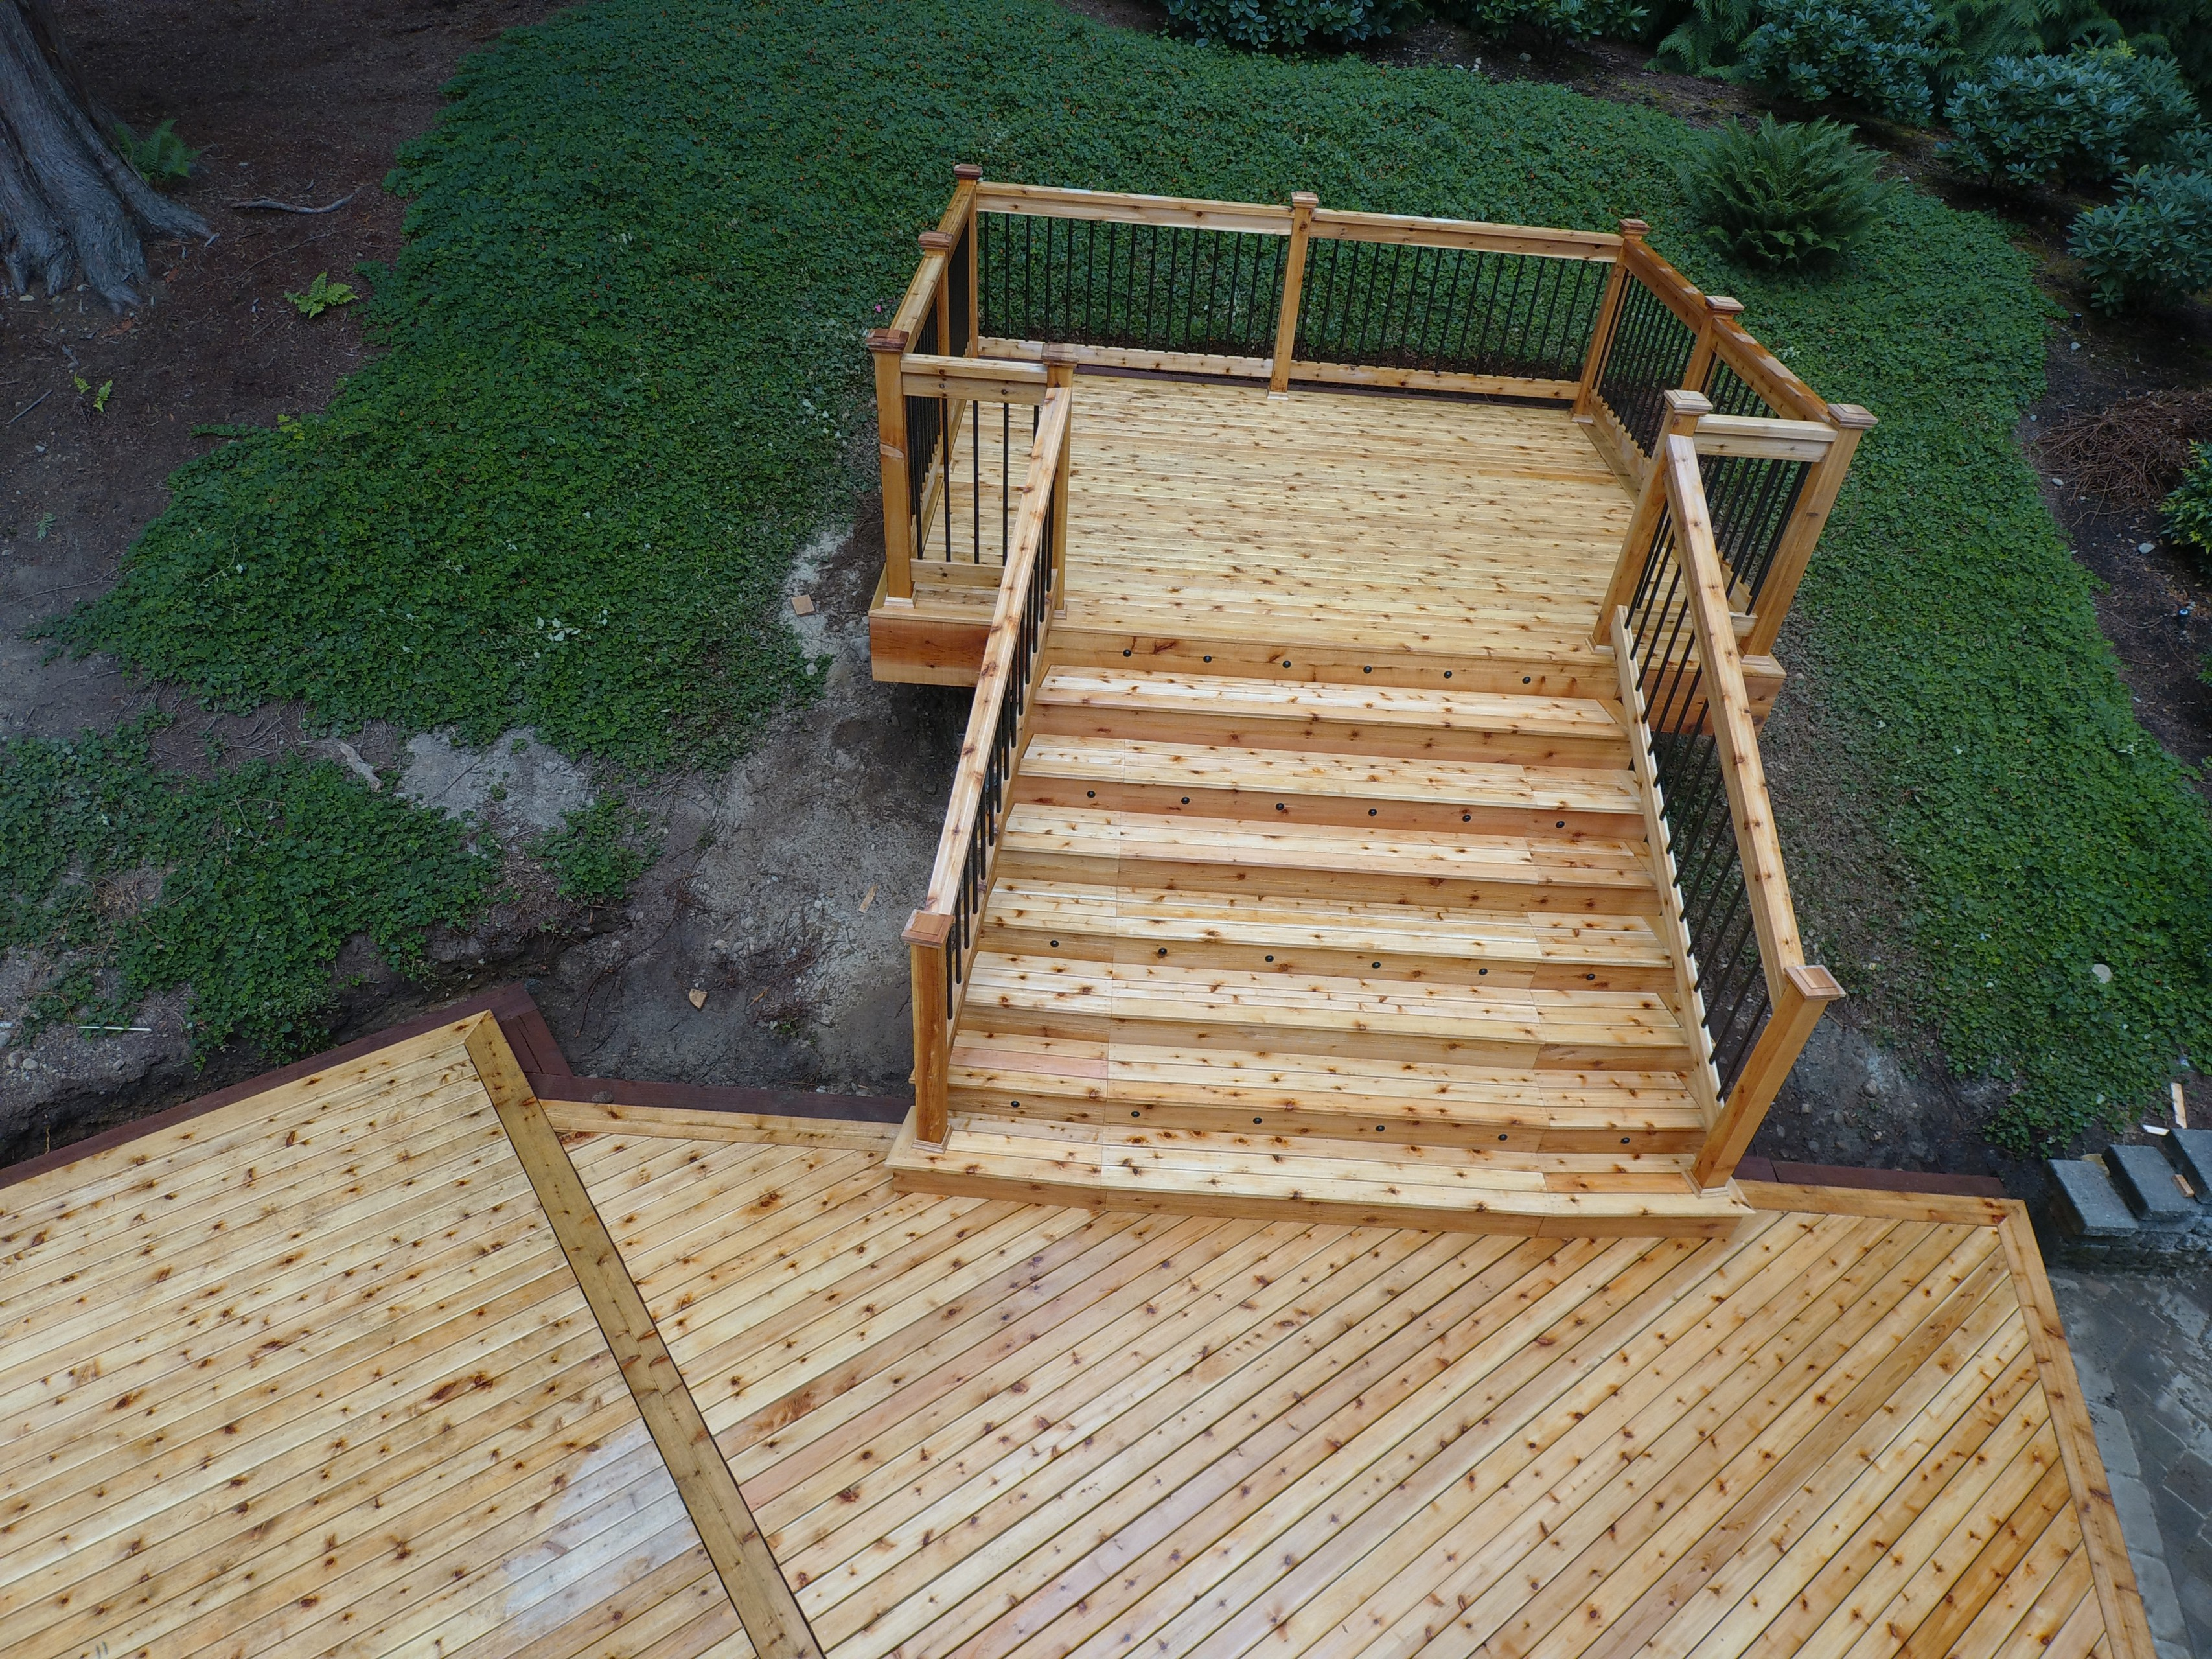 Issaquah-Highlands New Cedar Deck (Teardown, Rebuild, & Expand)